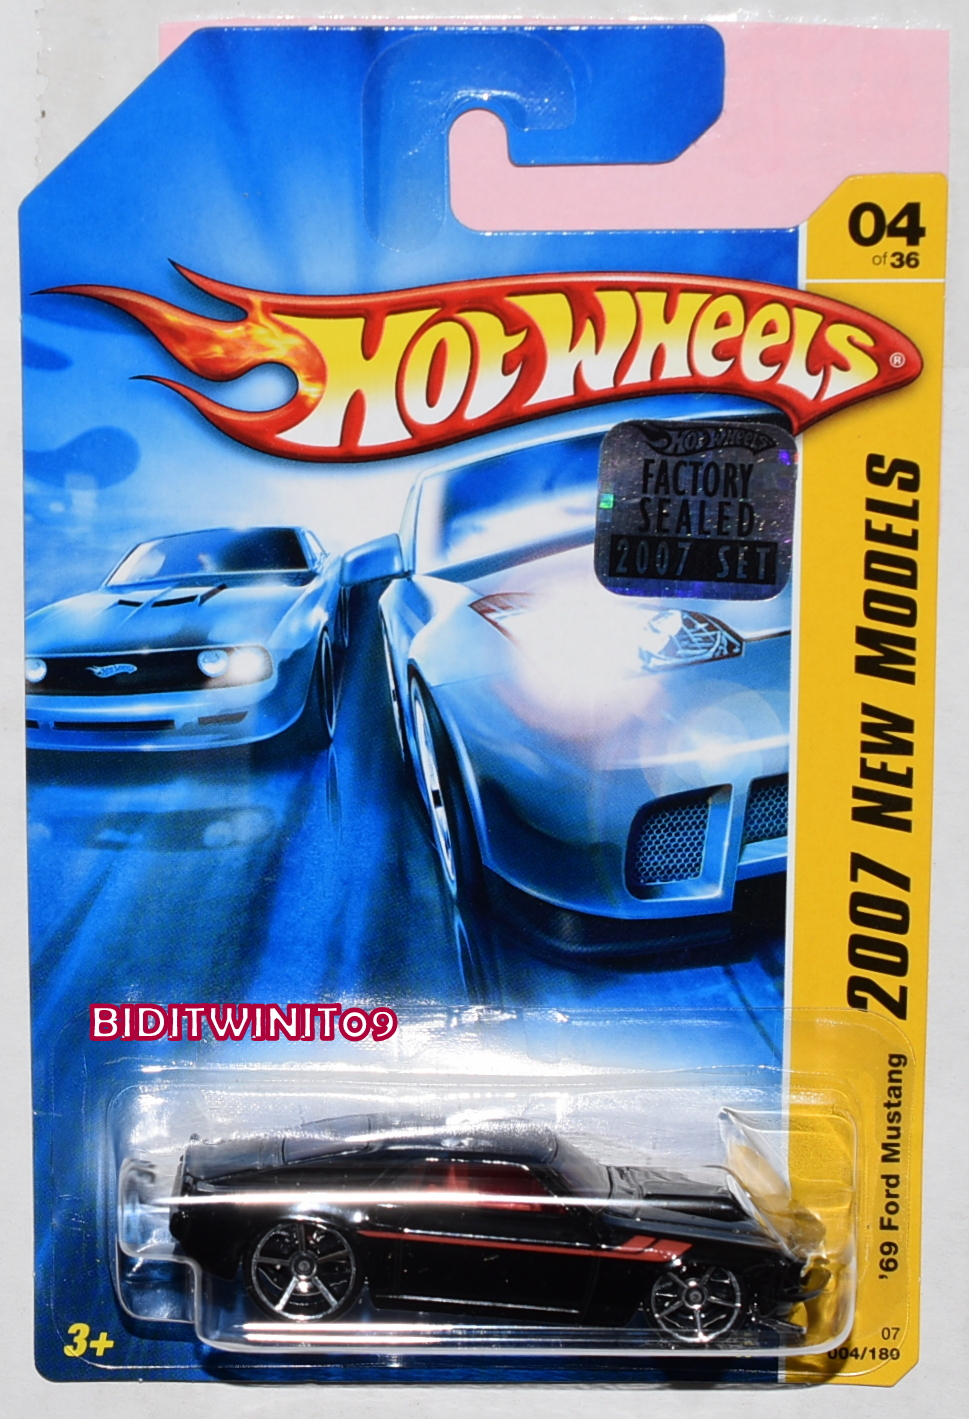 HOT WHEELS 2007 NEW MODELS '69 FORD MUSTANG #04/26 BLACK FACTORY SEALED